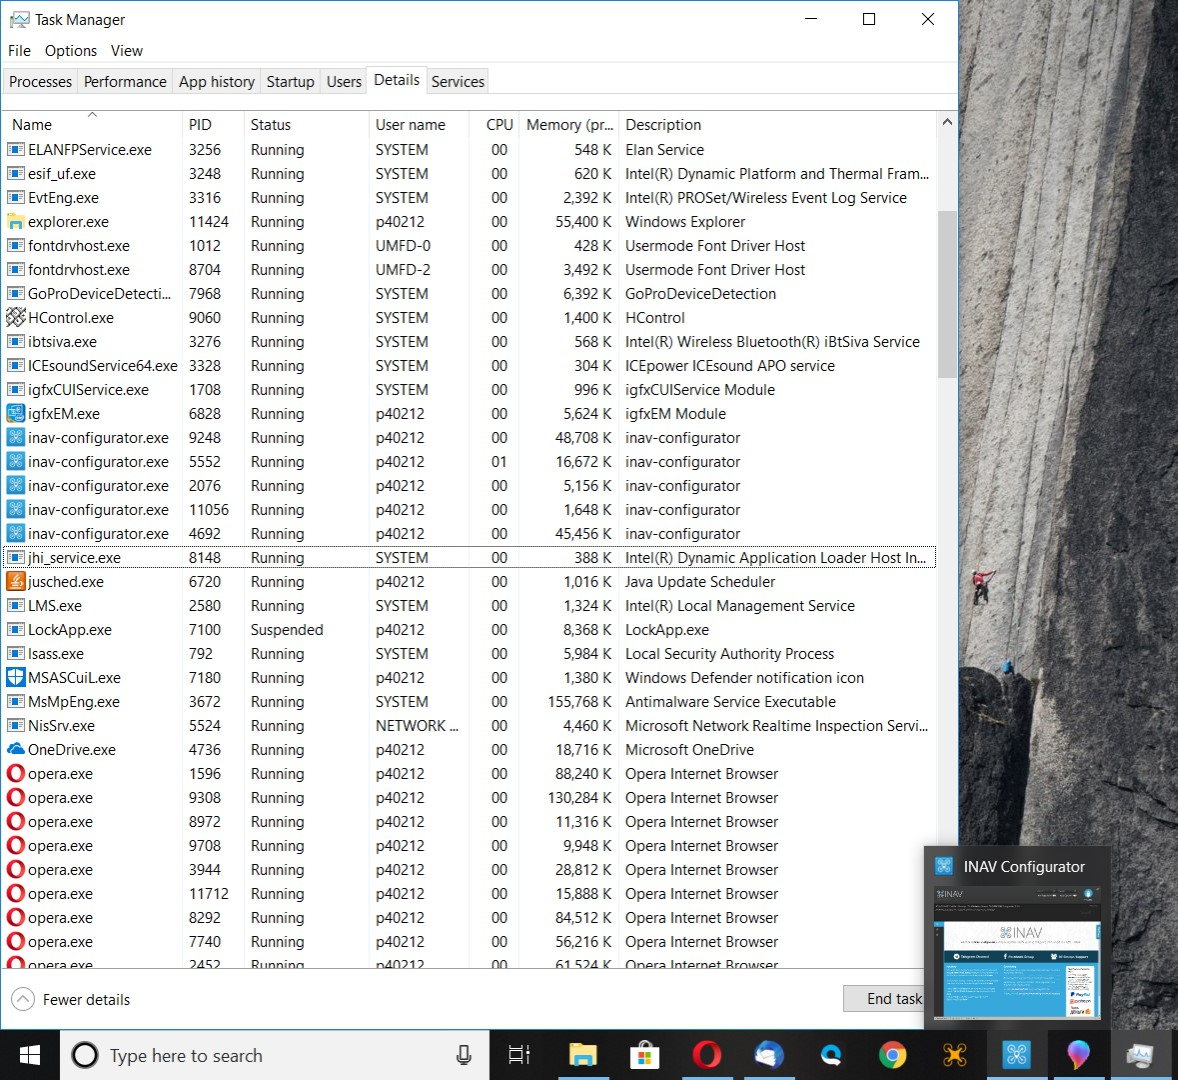 Win64_2 1 4 iNav on win10 gfx compatibility issue · Issue #741